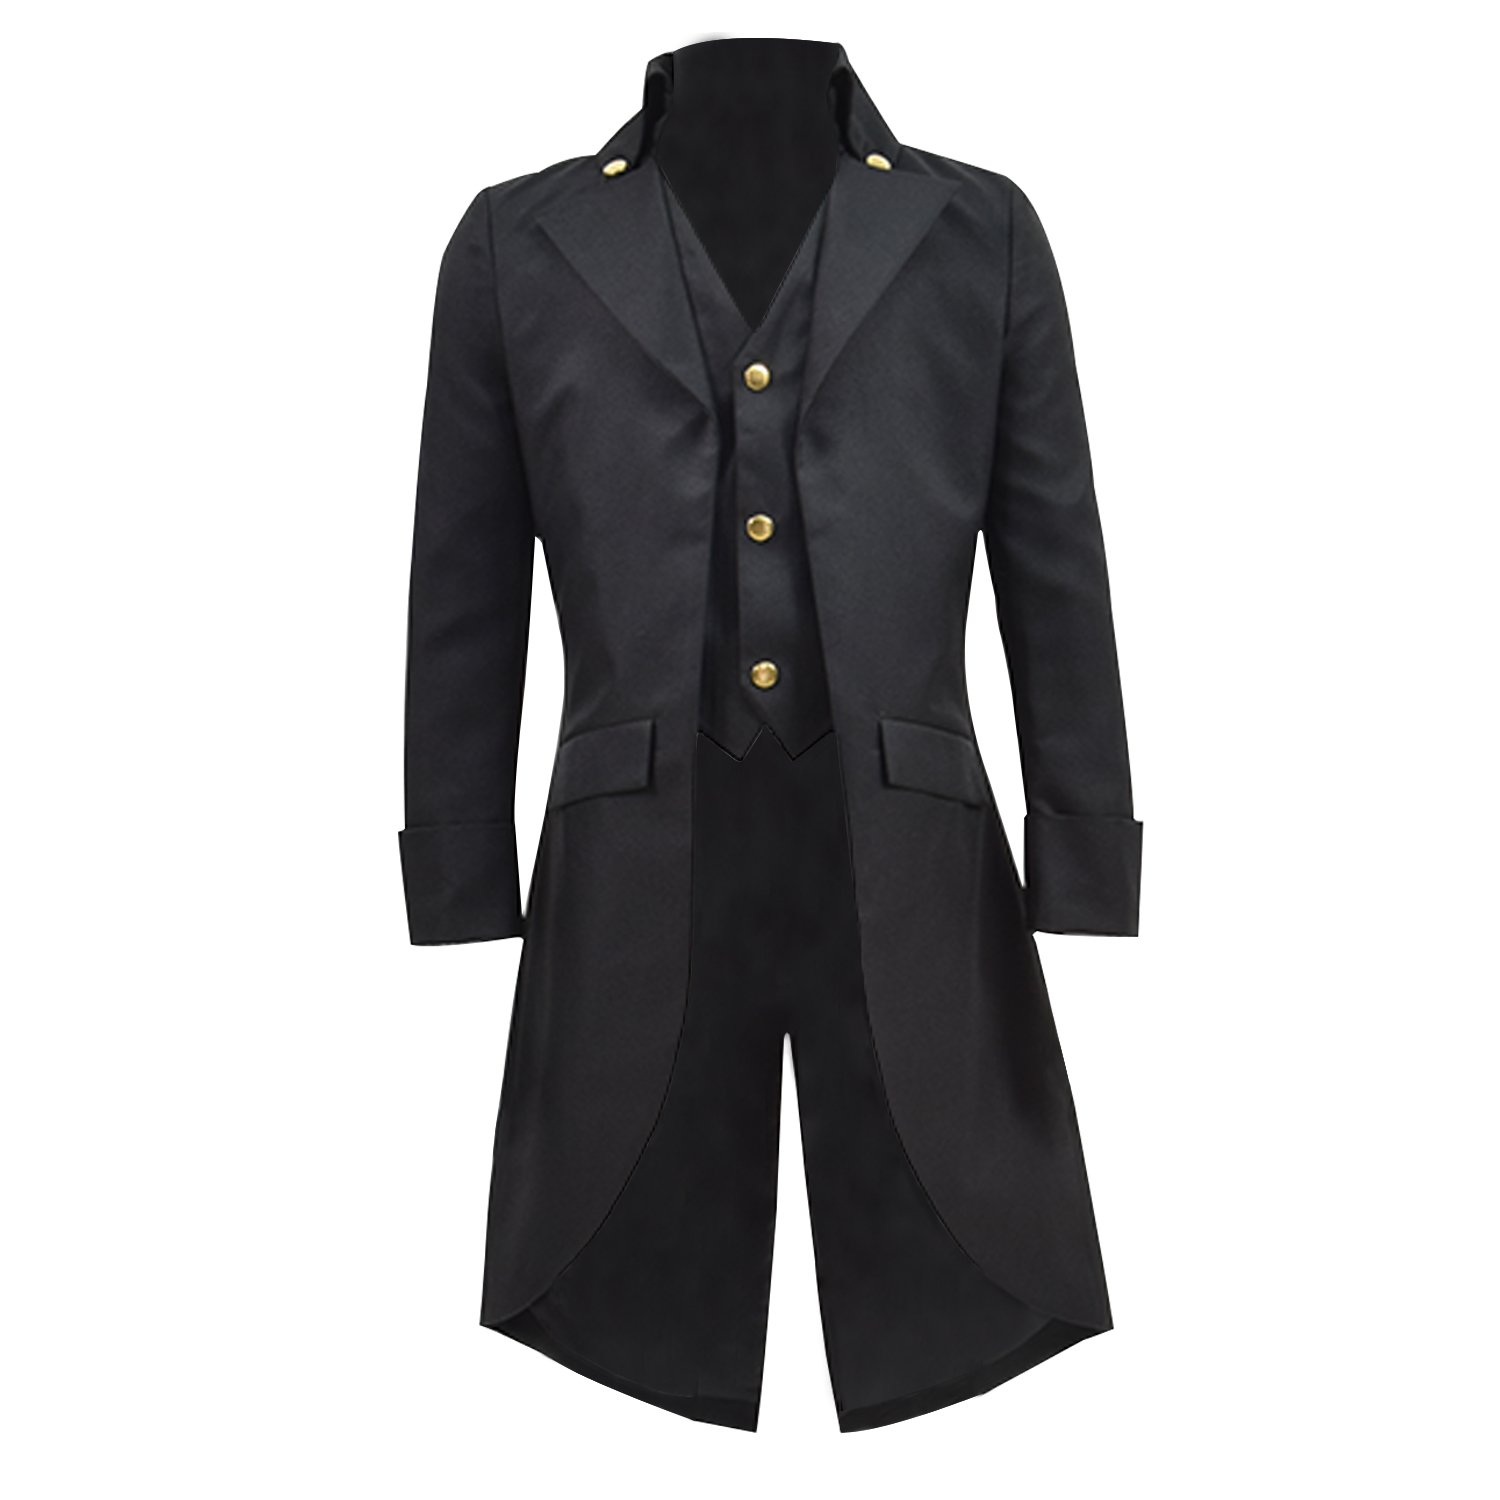 COSSKY Boys Gothic Tailcoat Jacket Steampunk Long Coat Halloween Costume (Black,10) by COSSKY